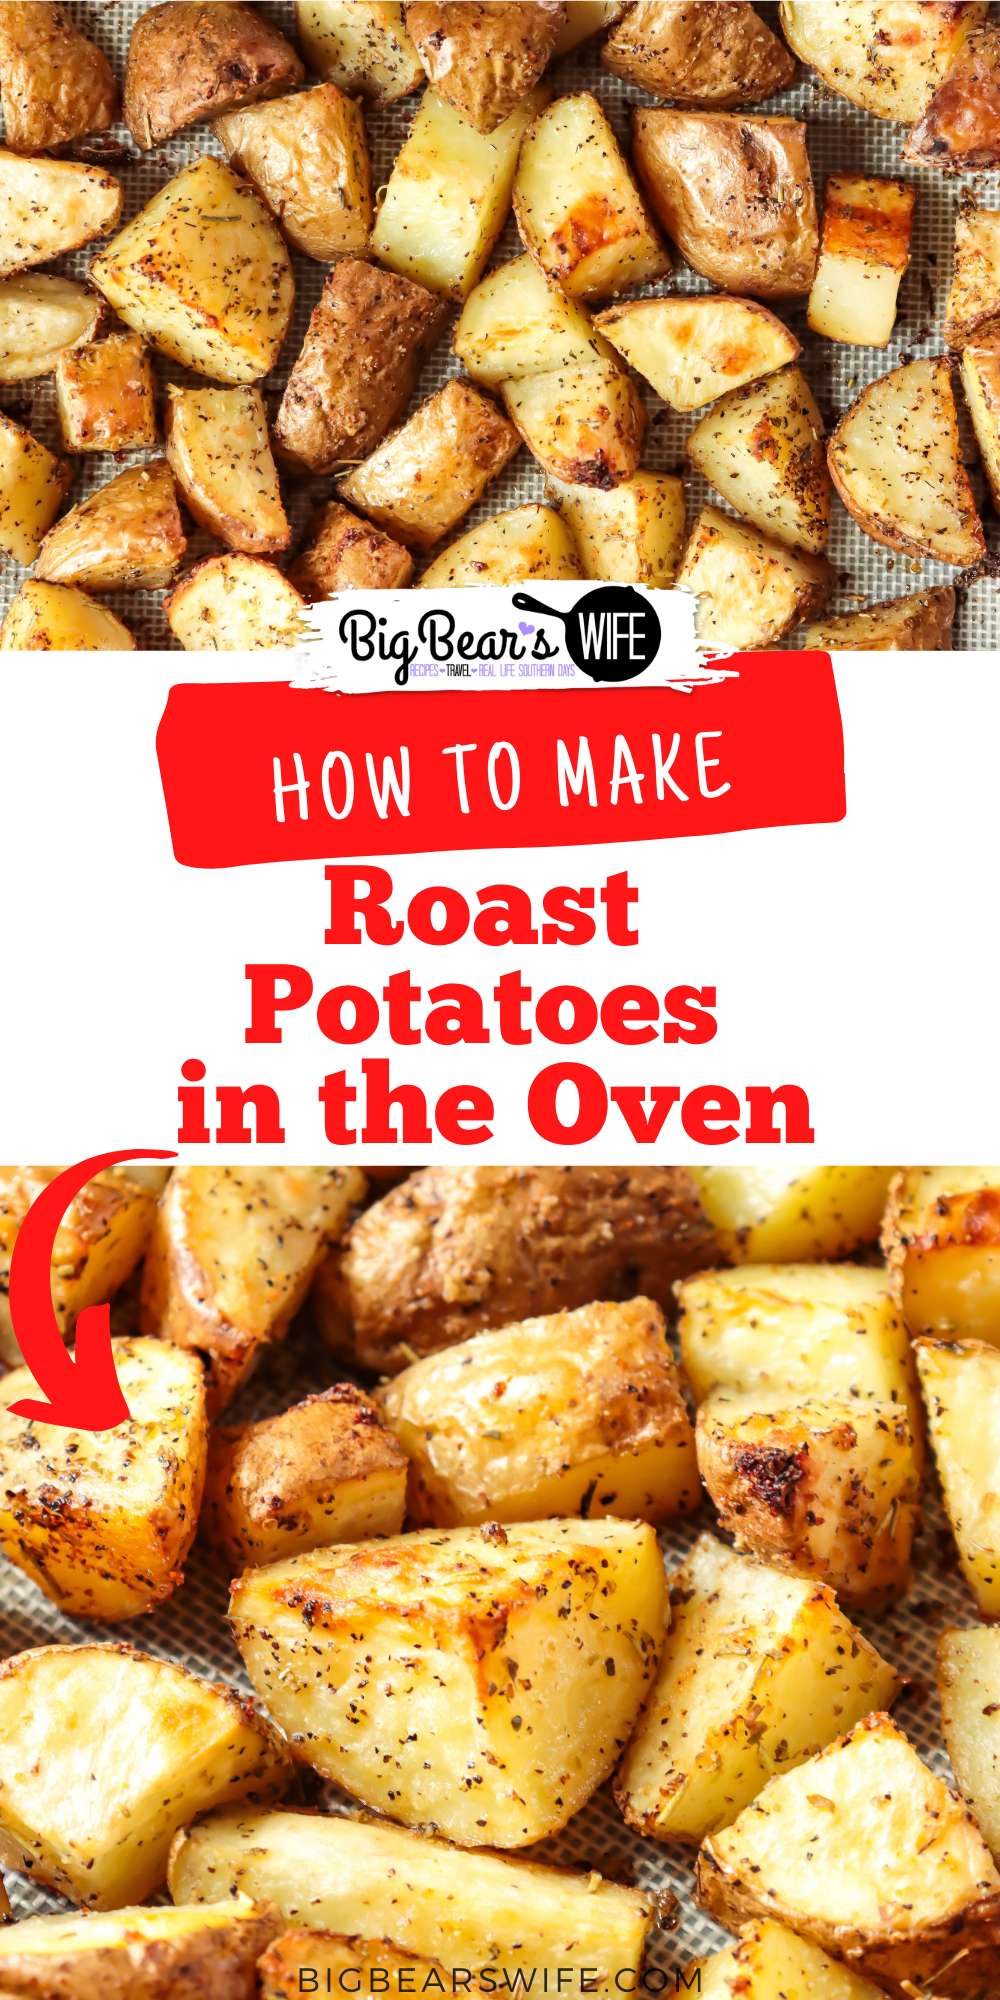 Roasted Potatoes are tender and delicious additions to any meals or recipe! Learn How To Roast Potatoes in the Oven and serve them with dinner this week! via @bigbearswife